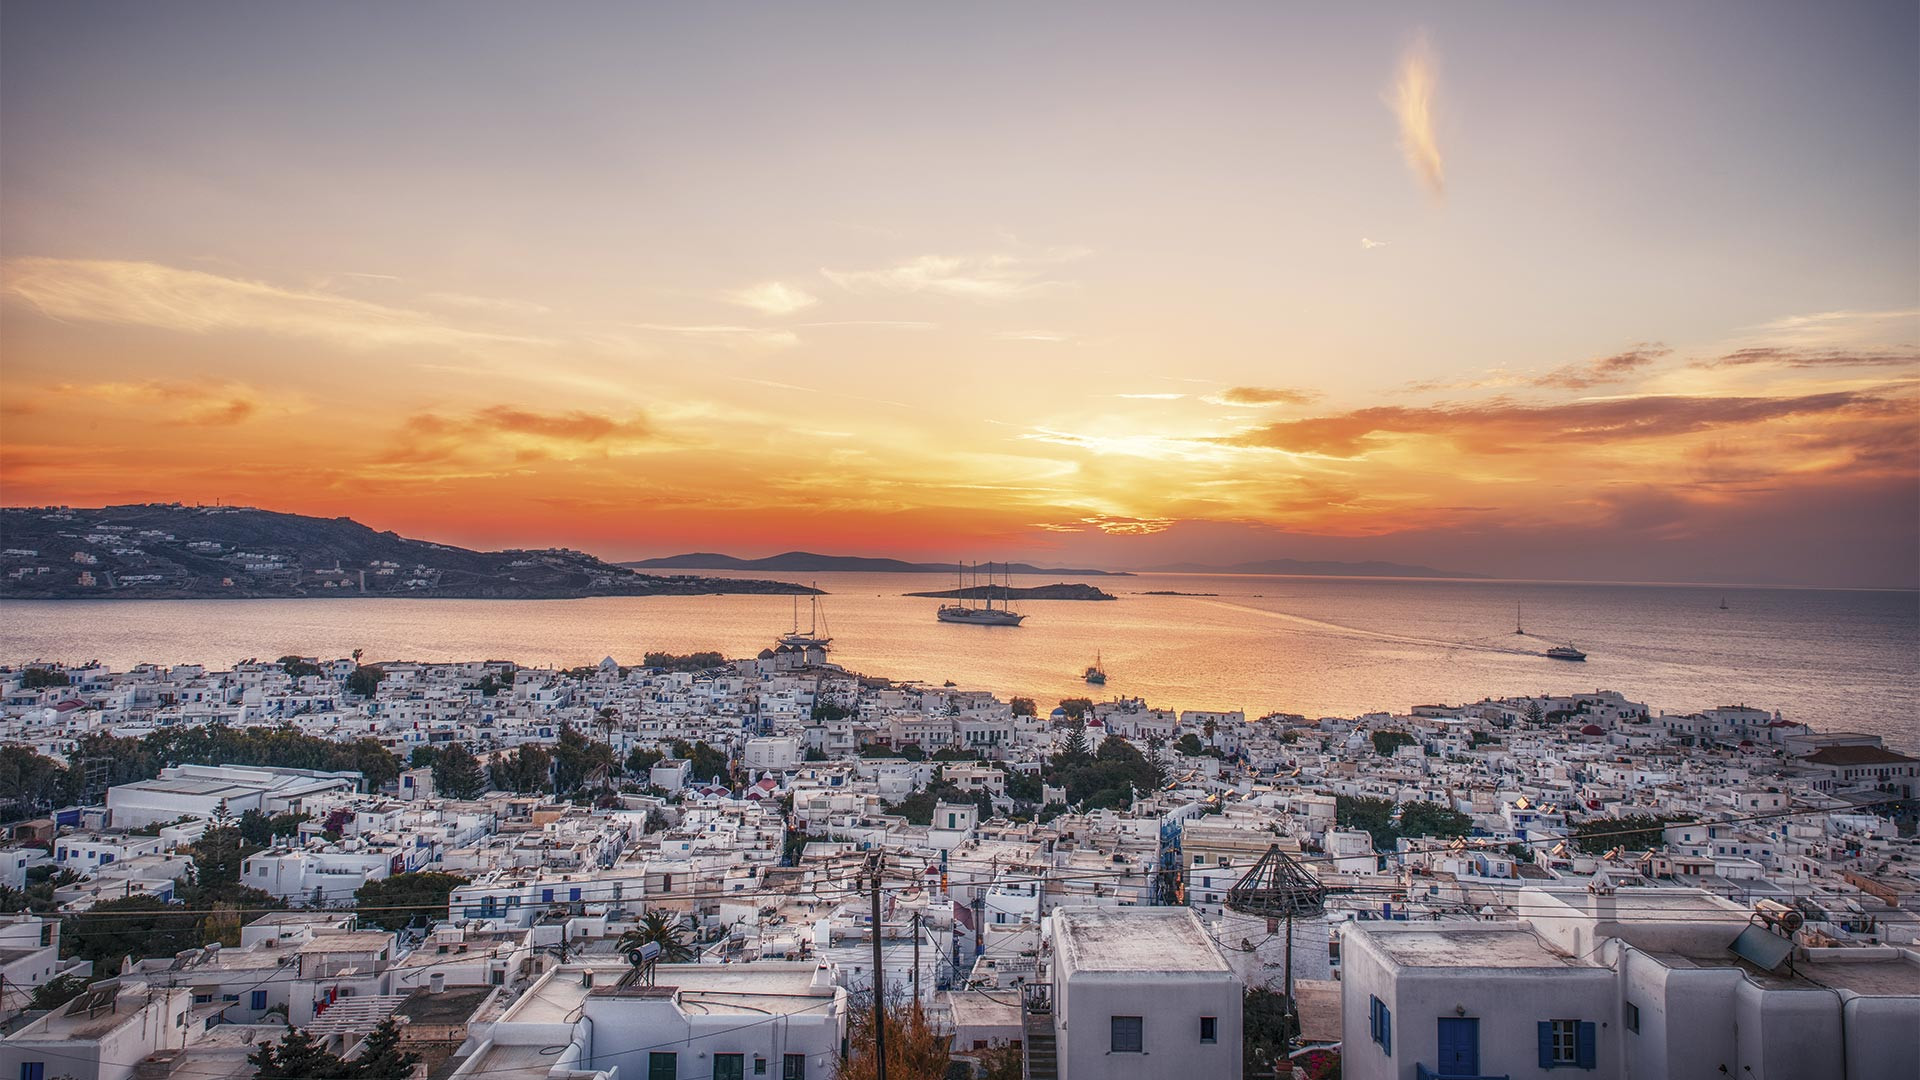 View of the Mykonos skyline from the top of the hill